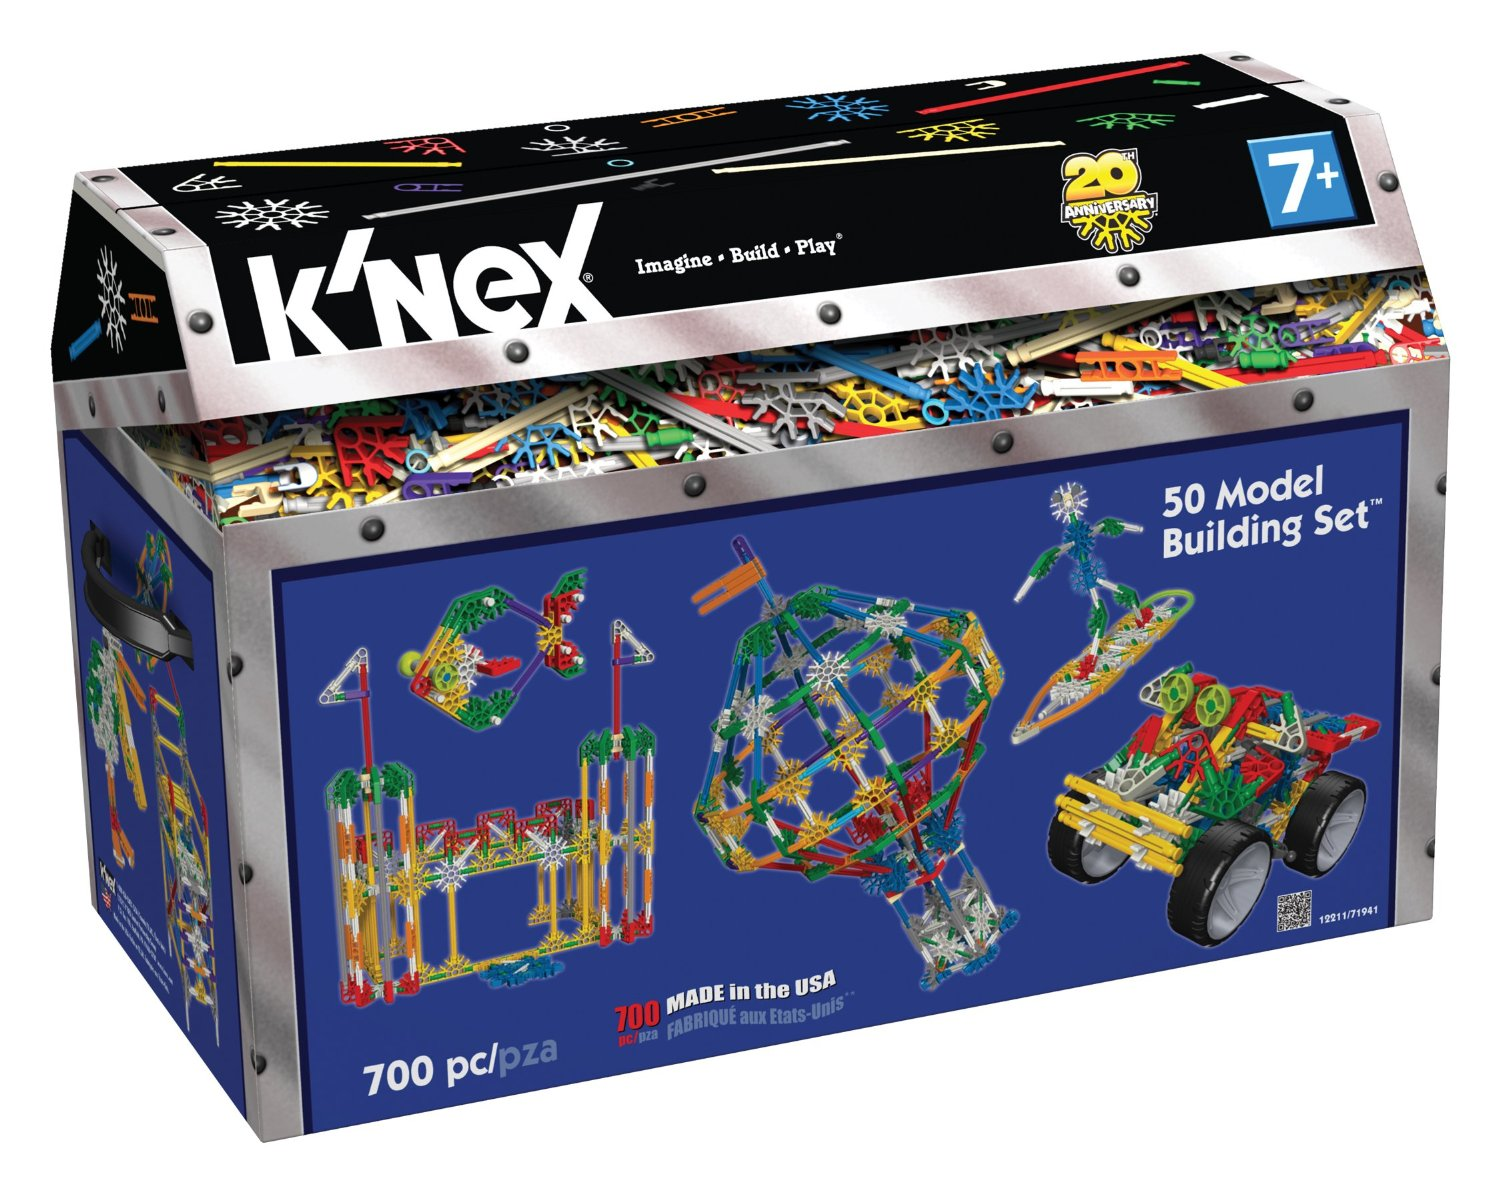 Construction Toys For Boys : Building toys for boys and girls top ten holiday lists